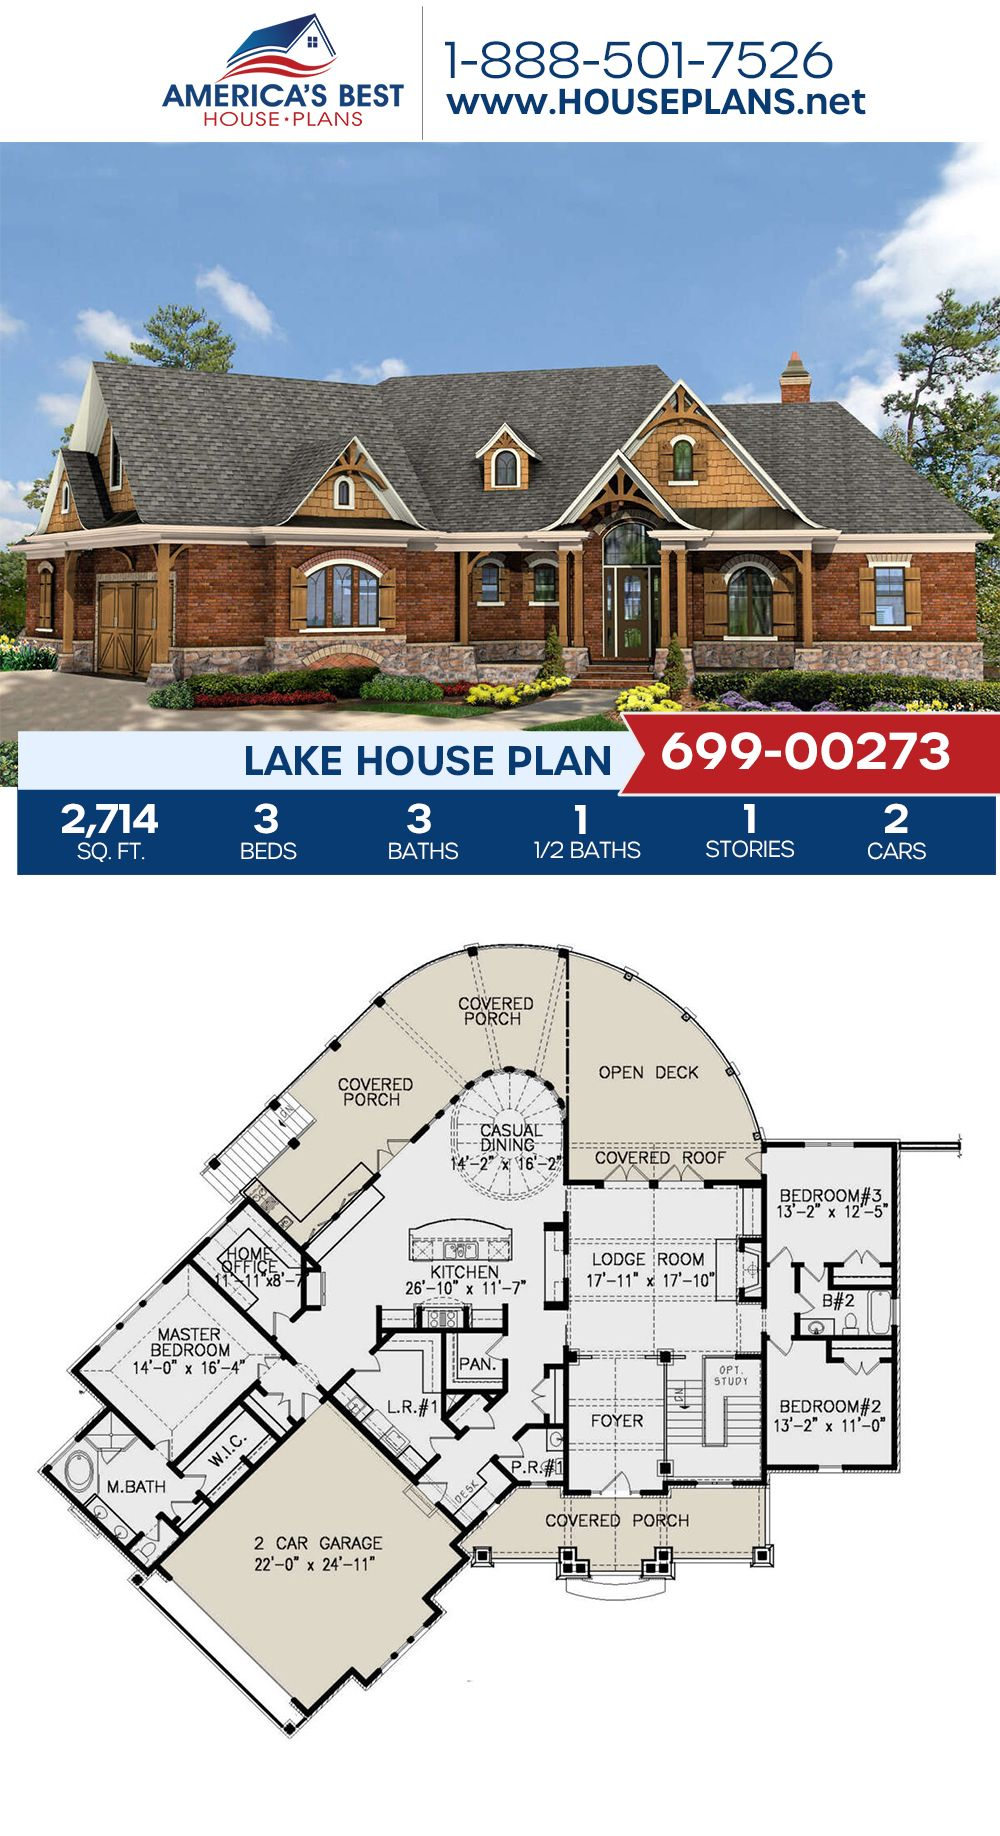 House Plan 699 00273 Lake Front Plan 2 714 Square Feet 3 Bedrooms 3 5 Bathrooms Lake House Plans House Plans Lake House